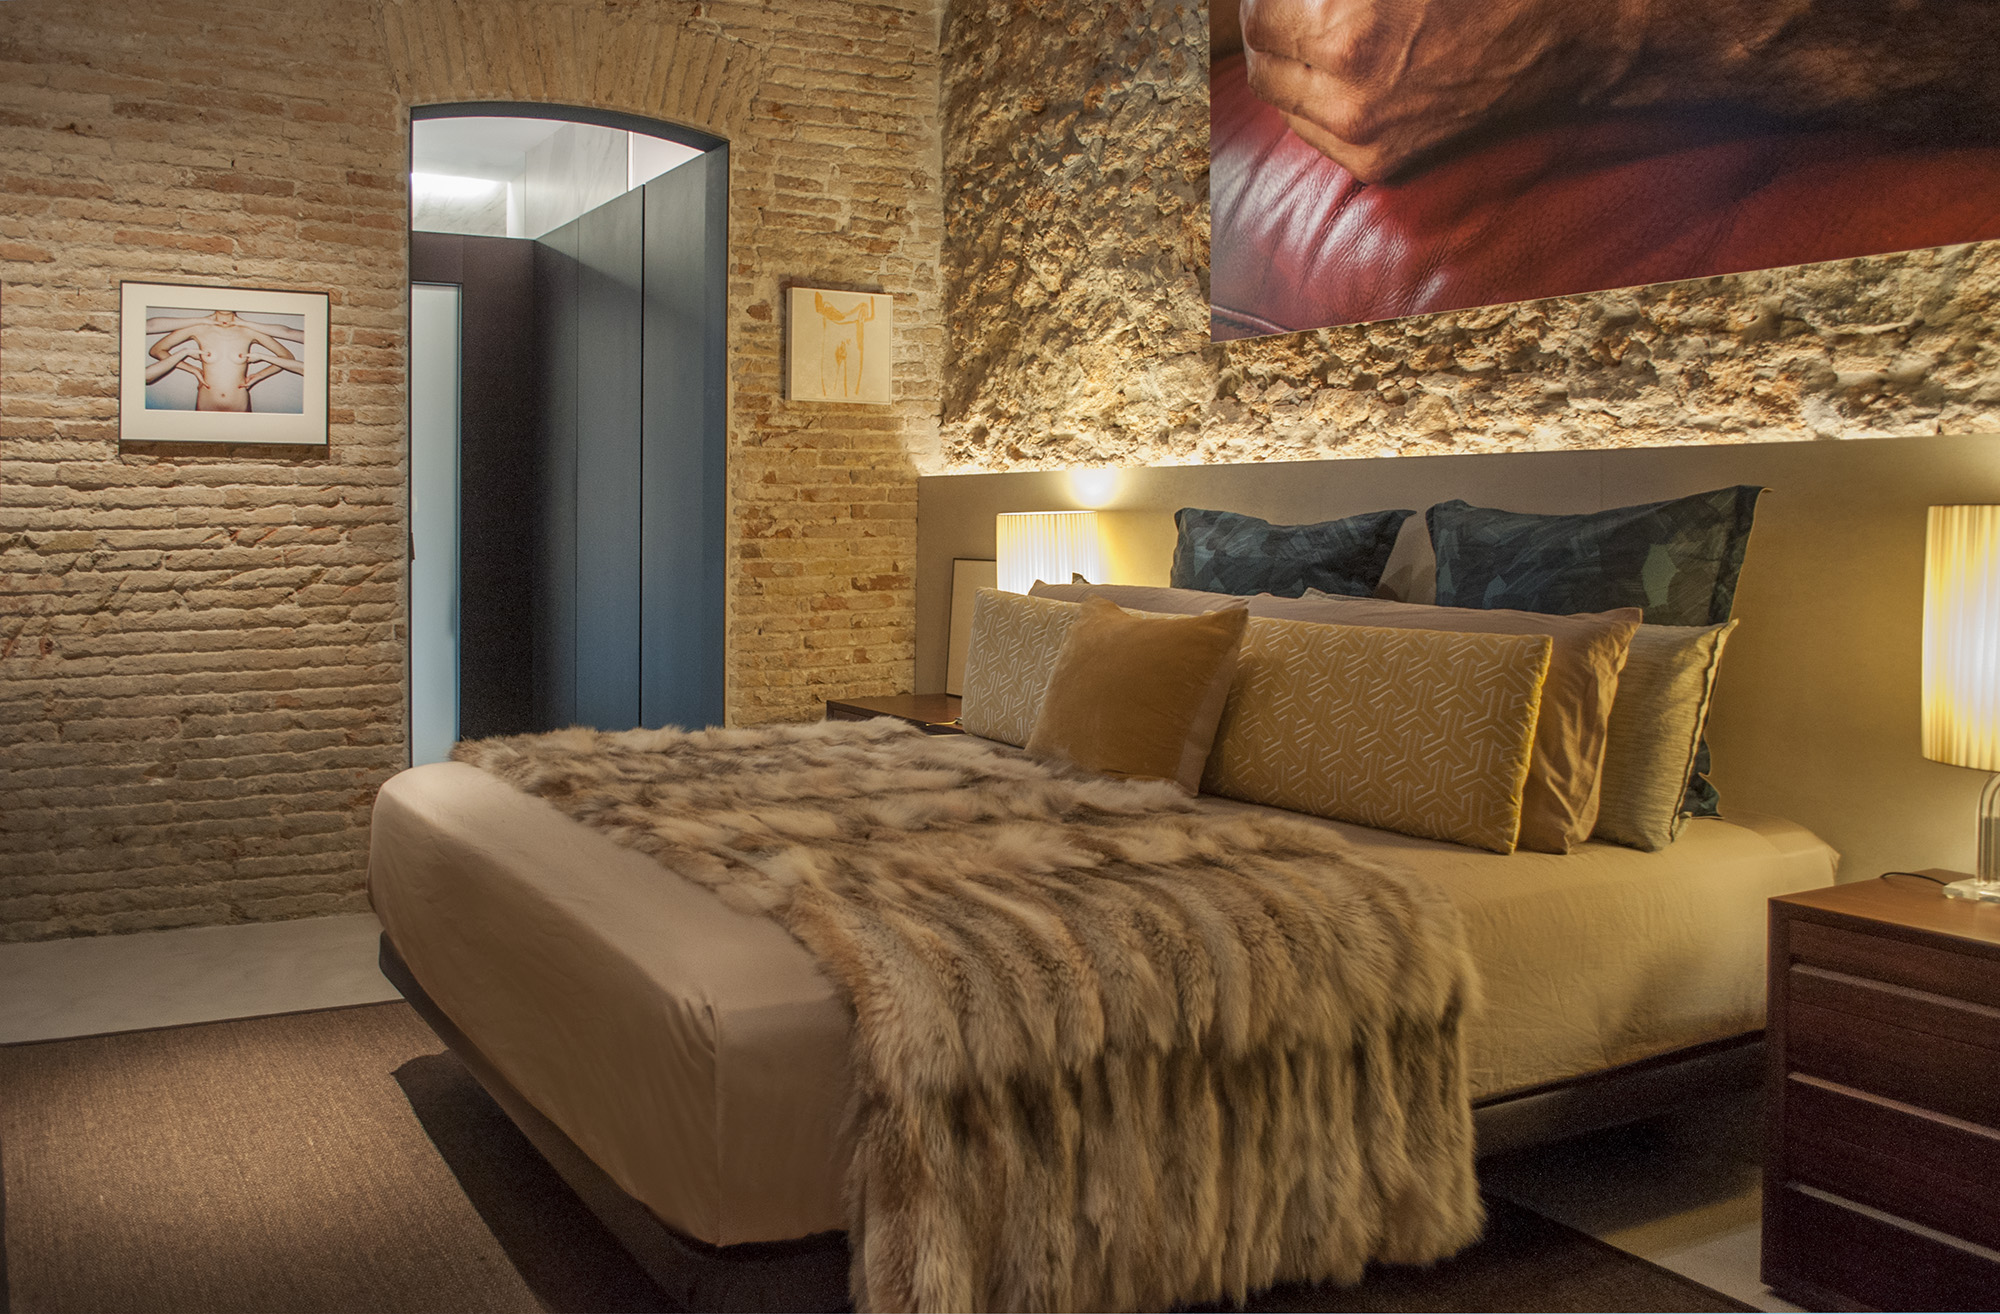 rardo-architects-in-sitges-and-barcelona-master-bedroom